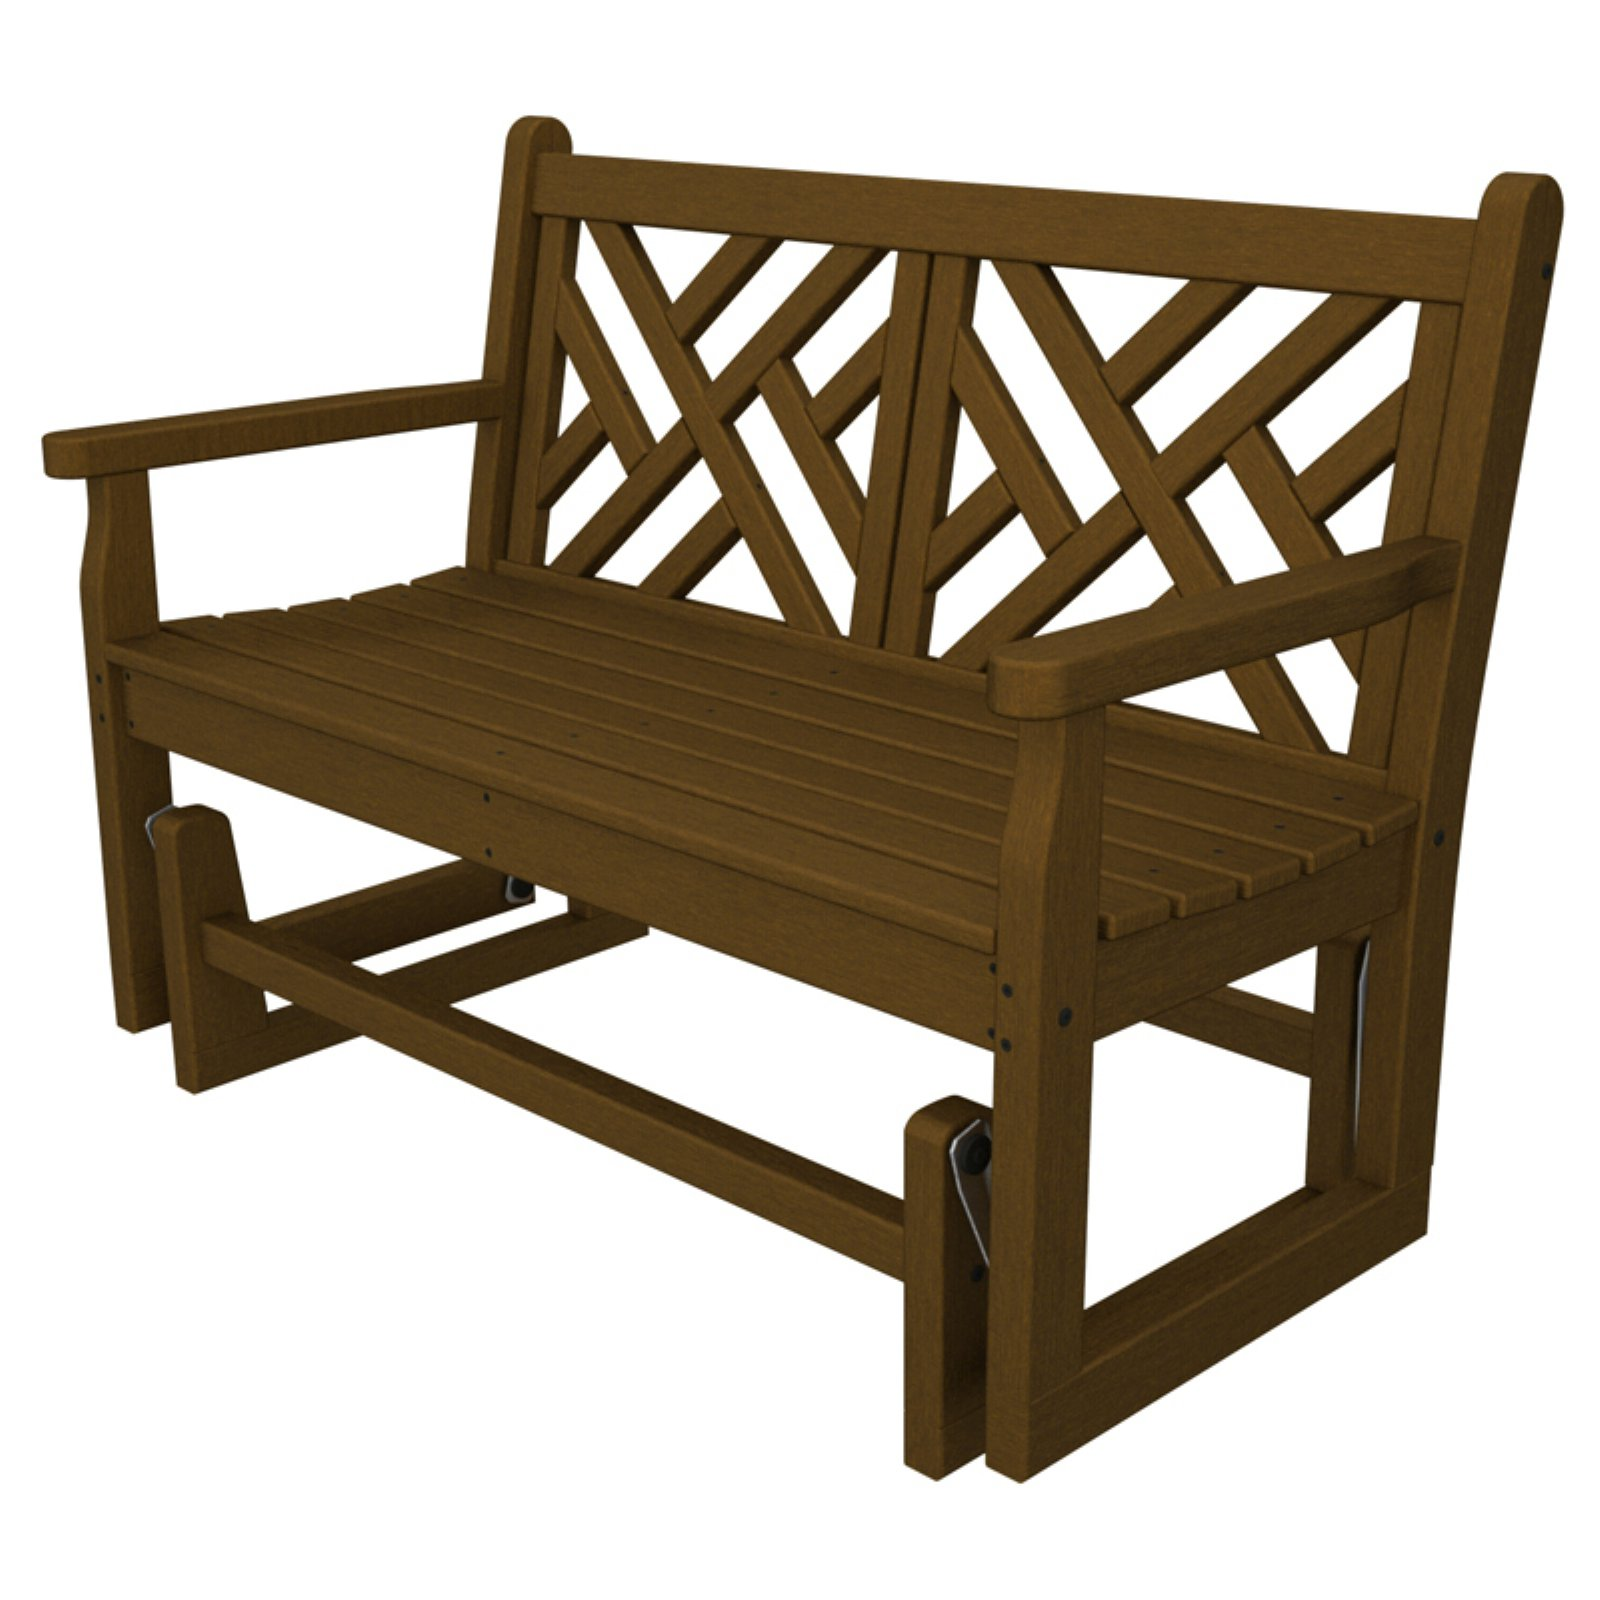 POLYWOOD; Chippendale 4 ft. Recycled Plastic Outdoor Glid...